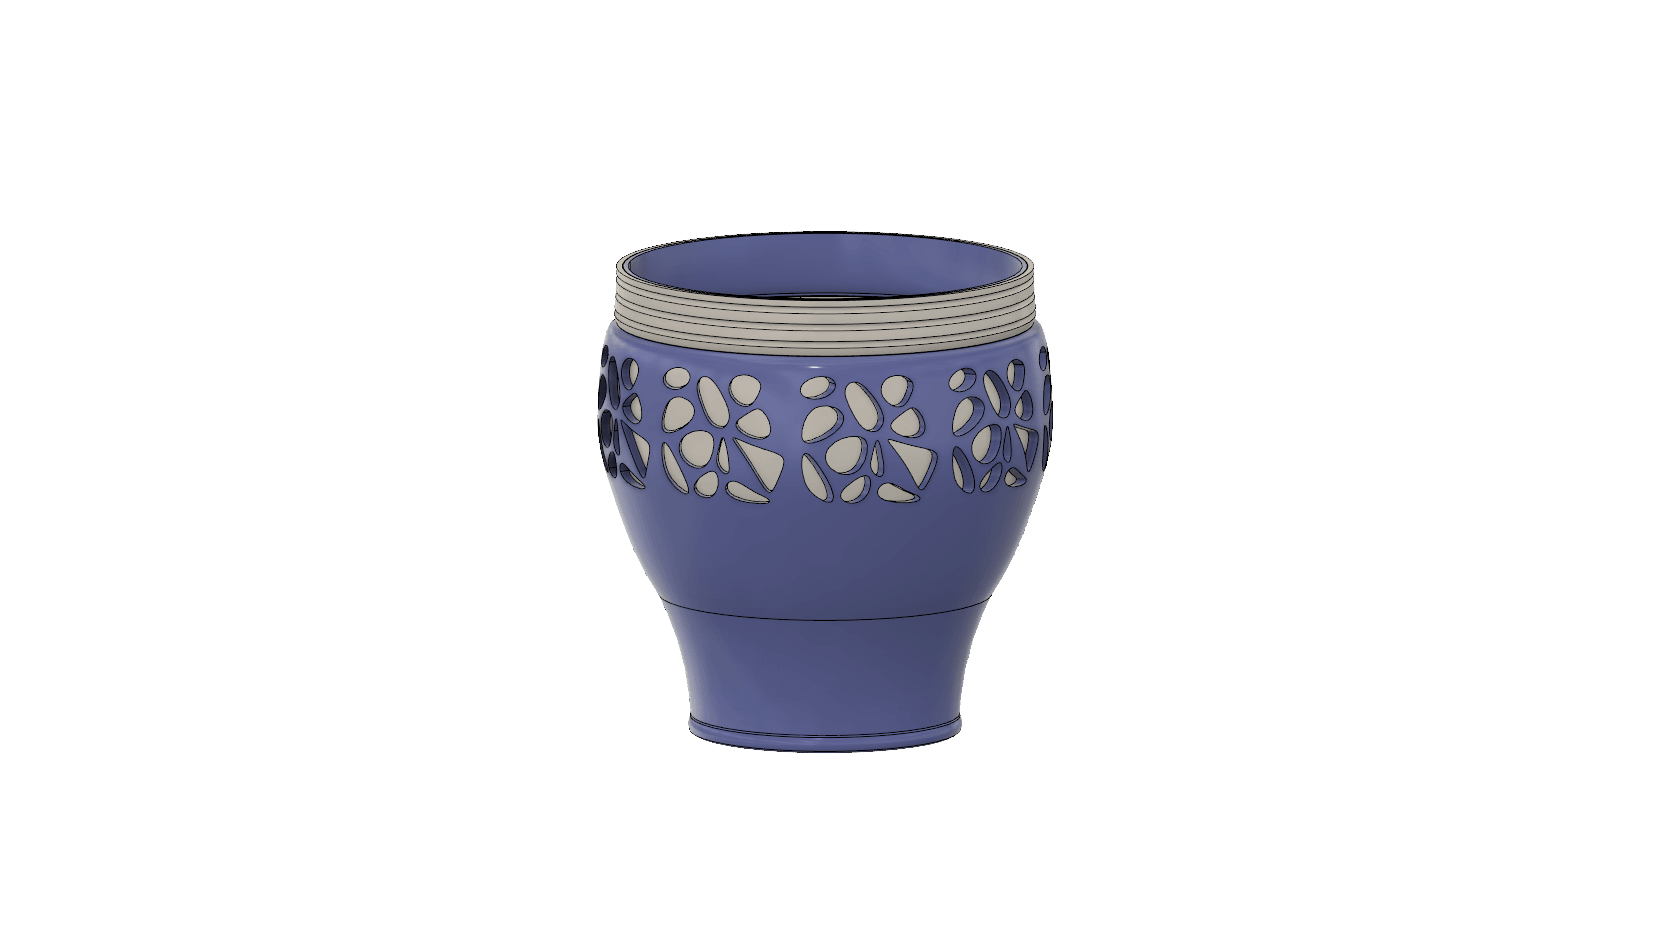 vase .png Download free STL file Vase • Object to 3D print, jttassin